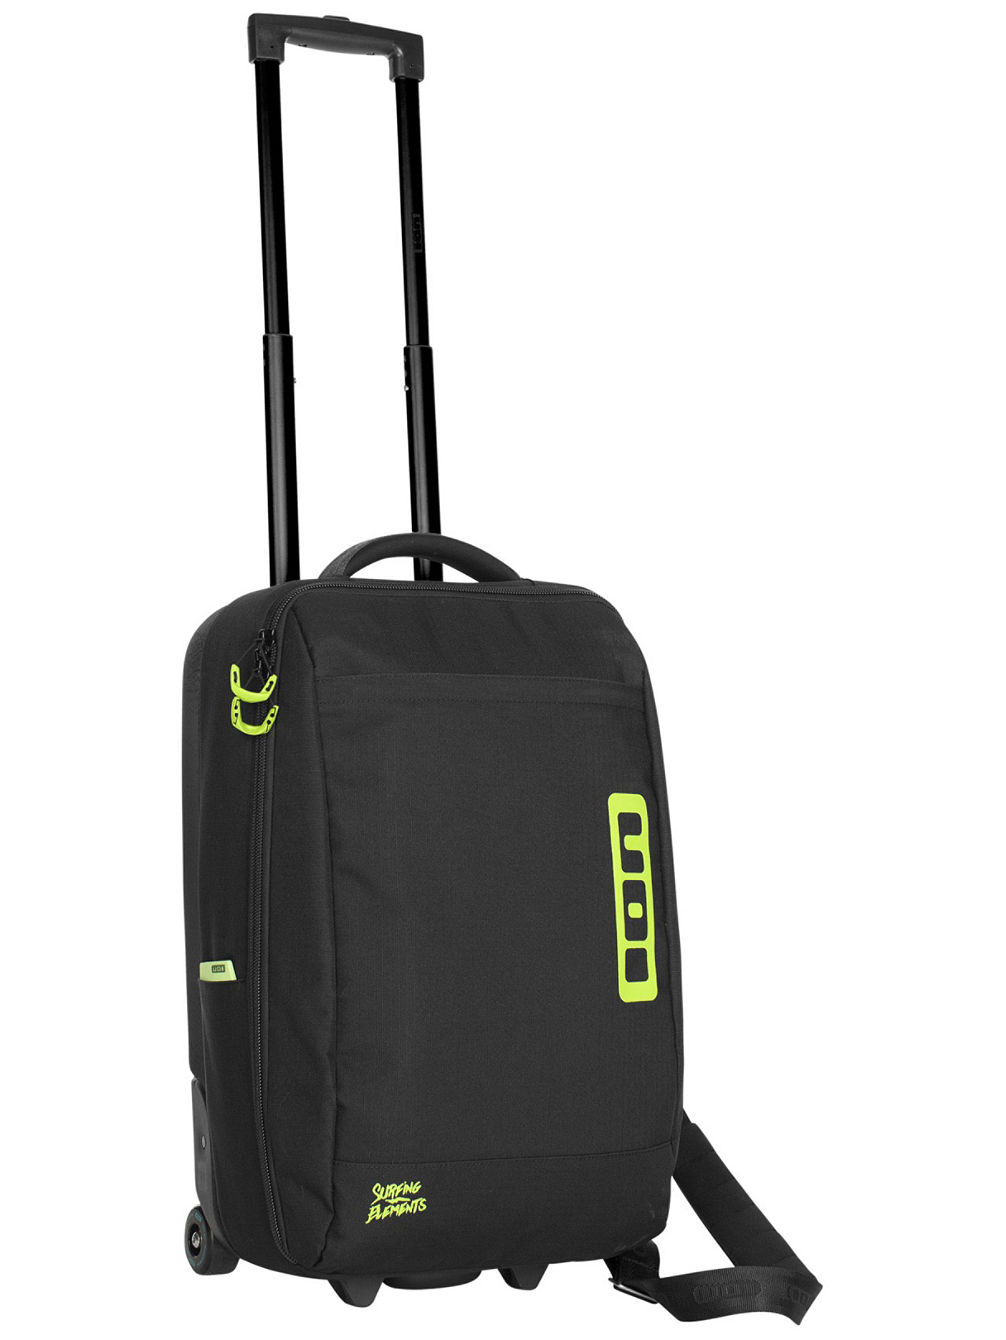 Wheelie S Travelbag